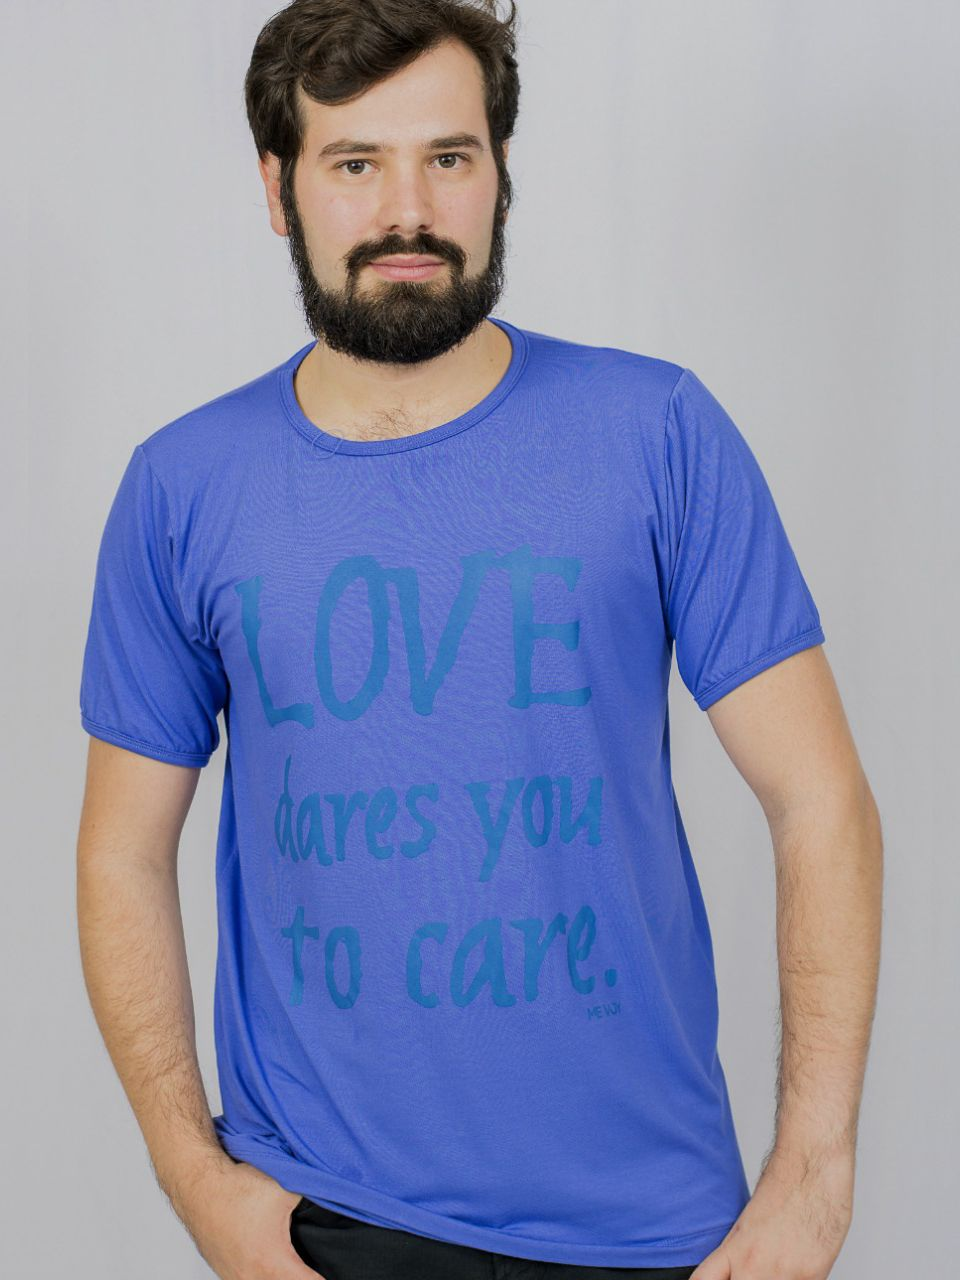 Manga Curta Masculina - Love dares You to care